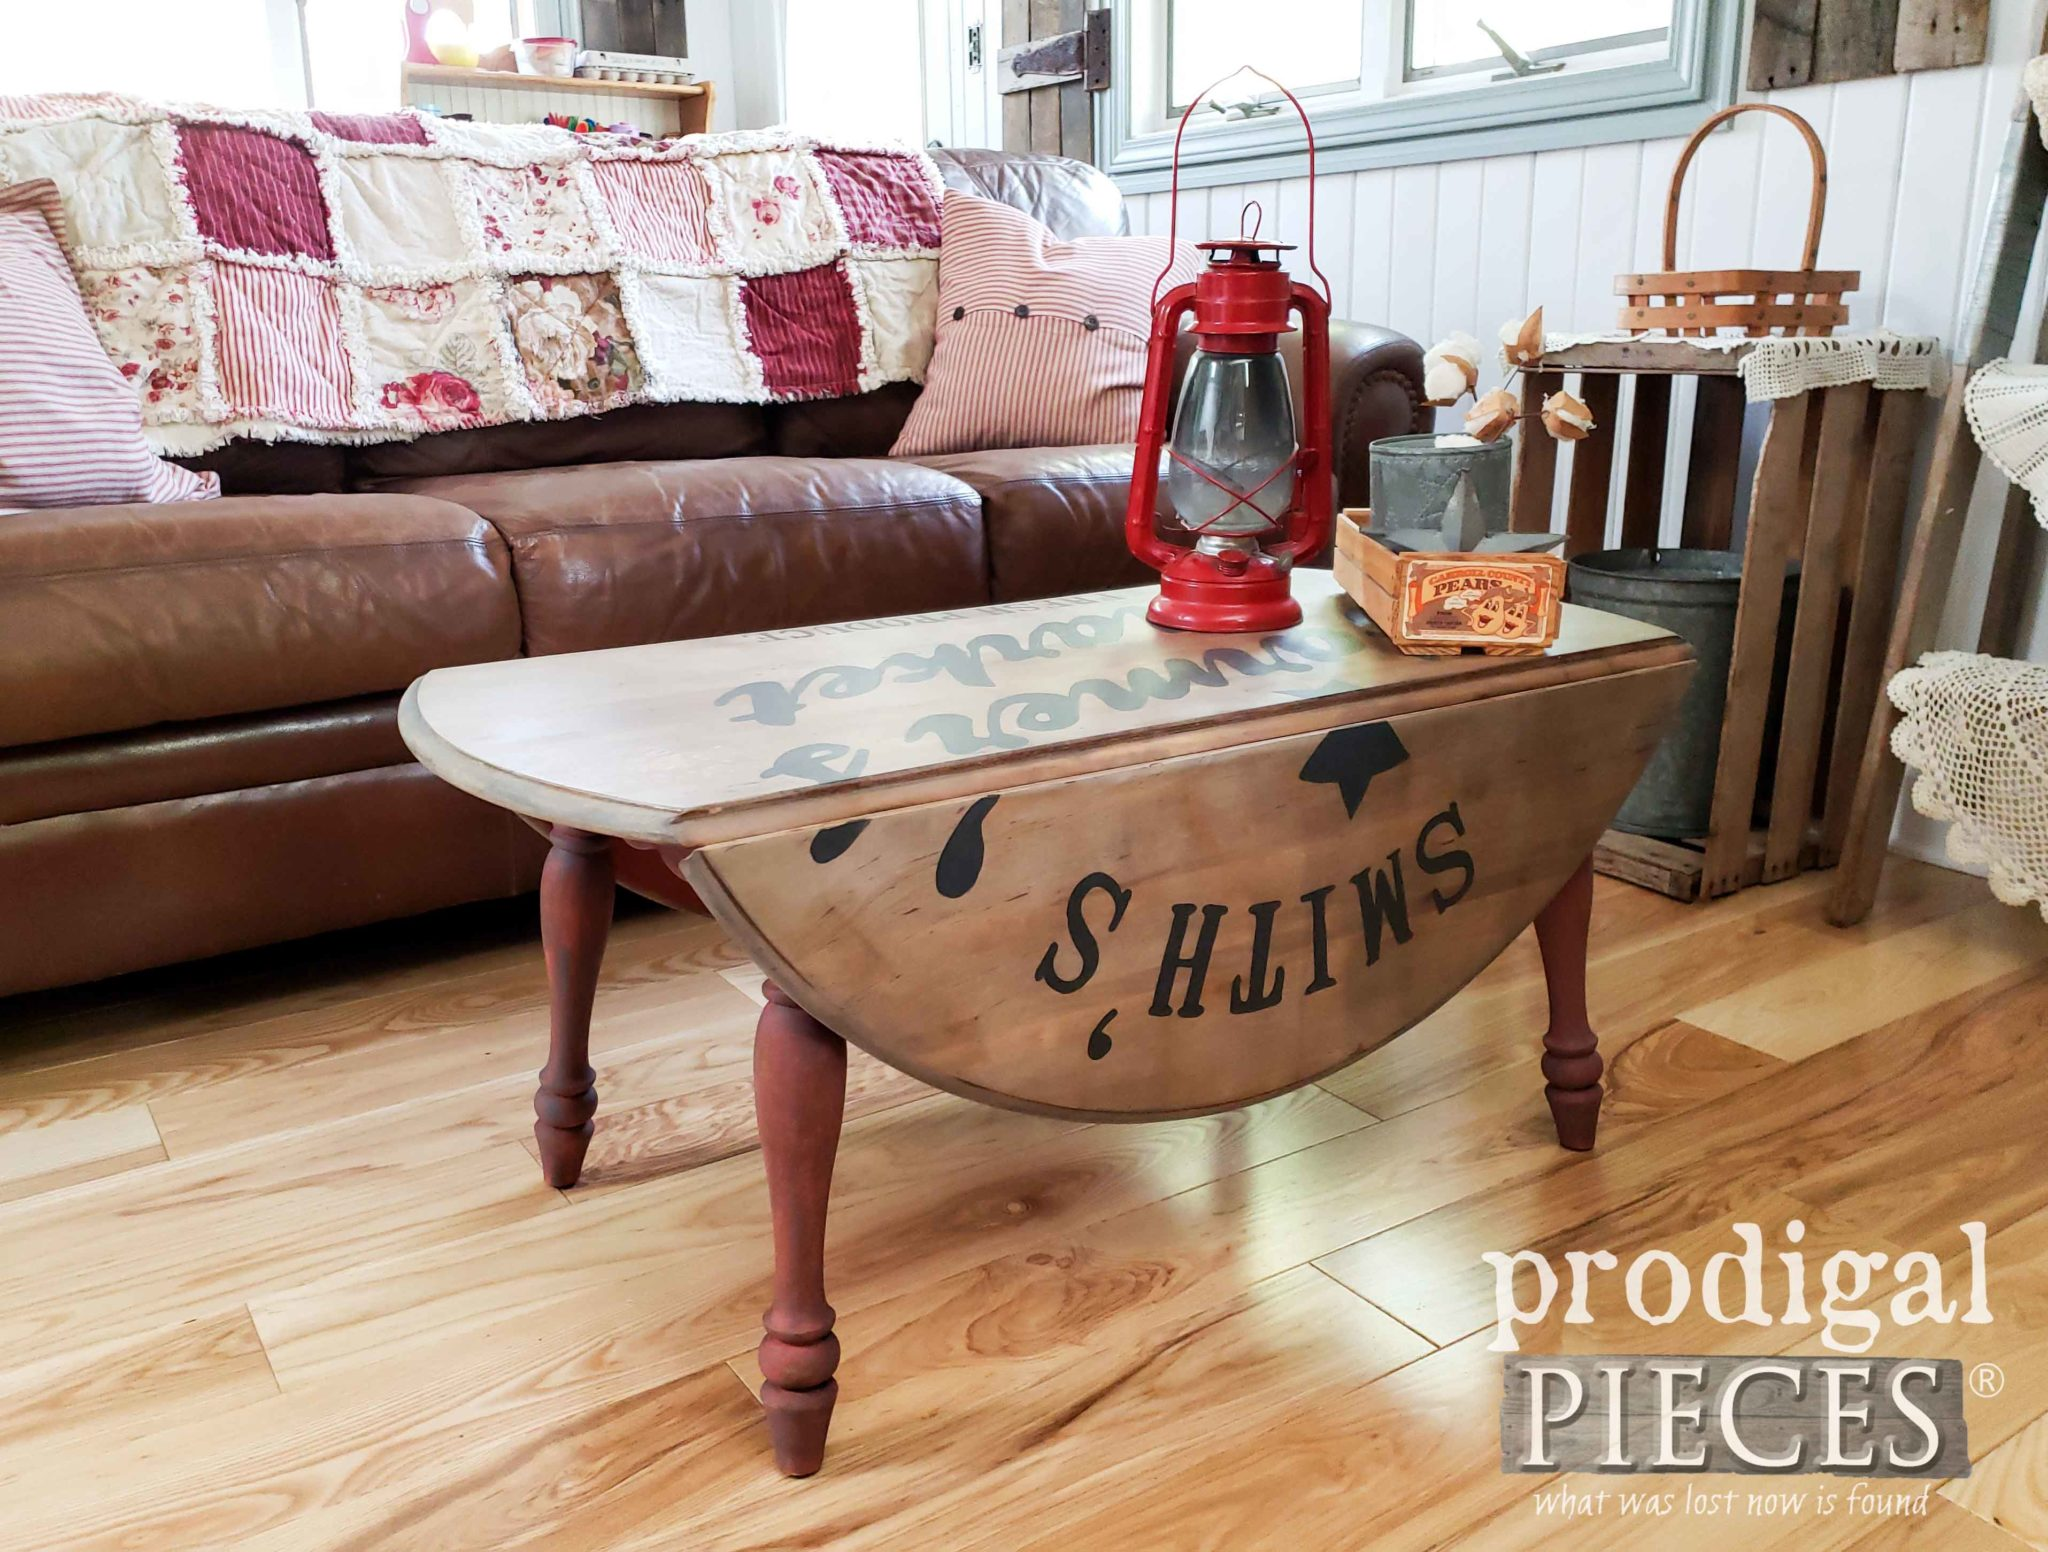 Rustic Farmhouse Coffee Table with Drop-Leaf Sides Created by Larissa of Prodigal Pieces | prodigalpieces.com #prodigalpieces #farmhouse #home #homedecor #diy